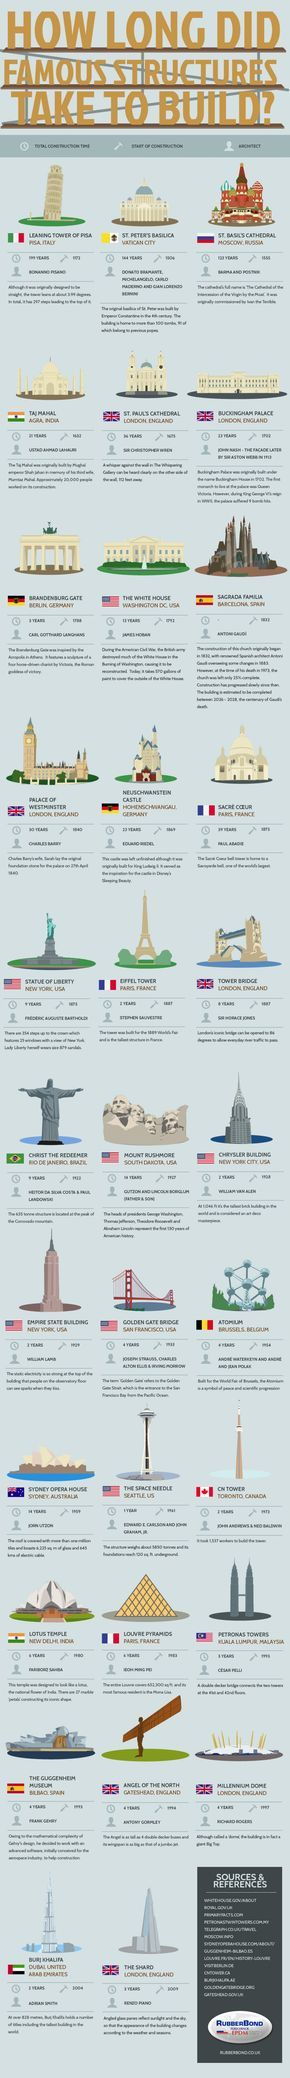 How Long Did Famous Structures Take to Build? INTRIGUING ARCHITECTURE long pin full of information about history of famous buildings across the centuries. #DdO:) - https://www.pinterest.com/DianaDeeOsborne/intriguing-architecture/ - DATES and names of ARCHITECTS included, as well as less known fascinating info some people call #trivia. Pinned via Montbiz.. Source: infografía